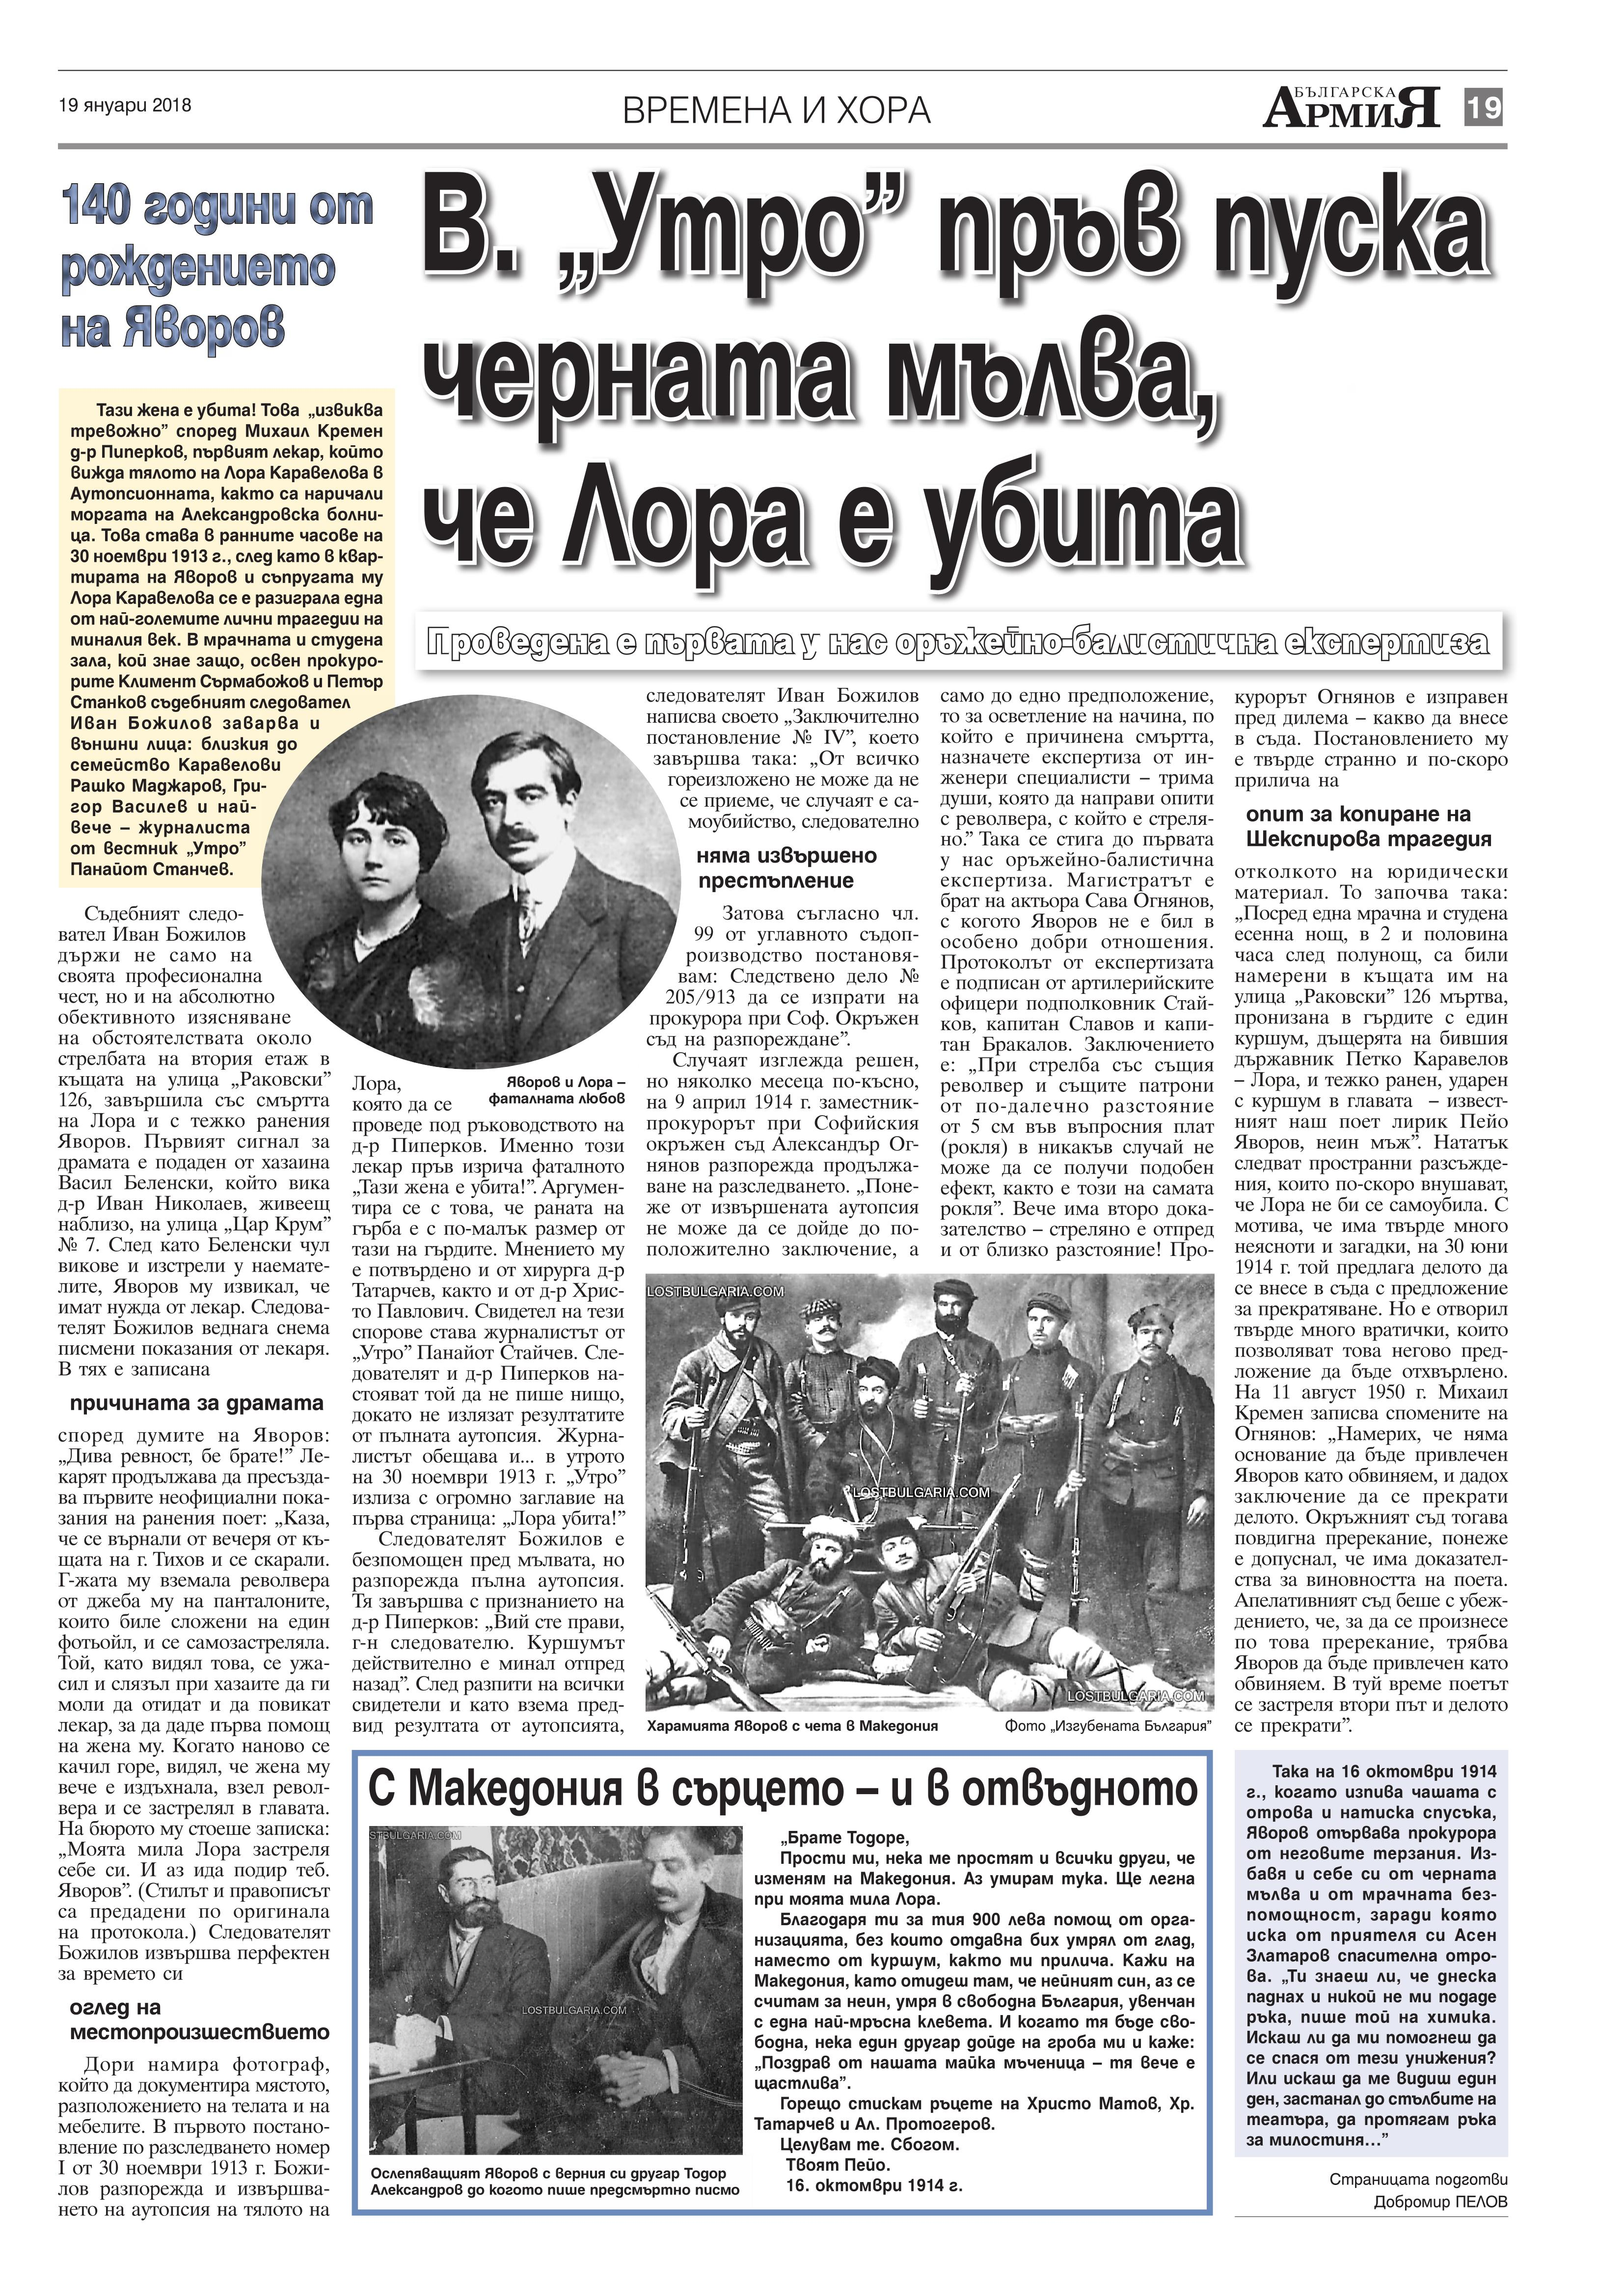 http://armymedia.bg/wp-content/uploads/2015/06/19.page1_-37.jpg